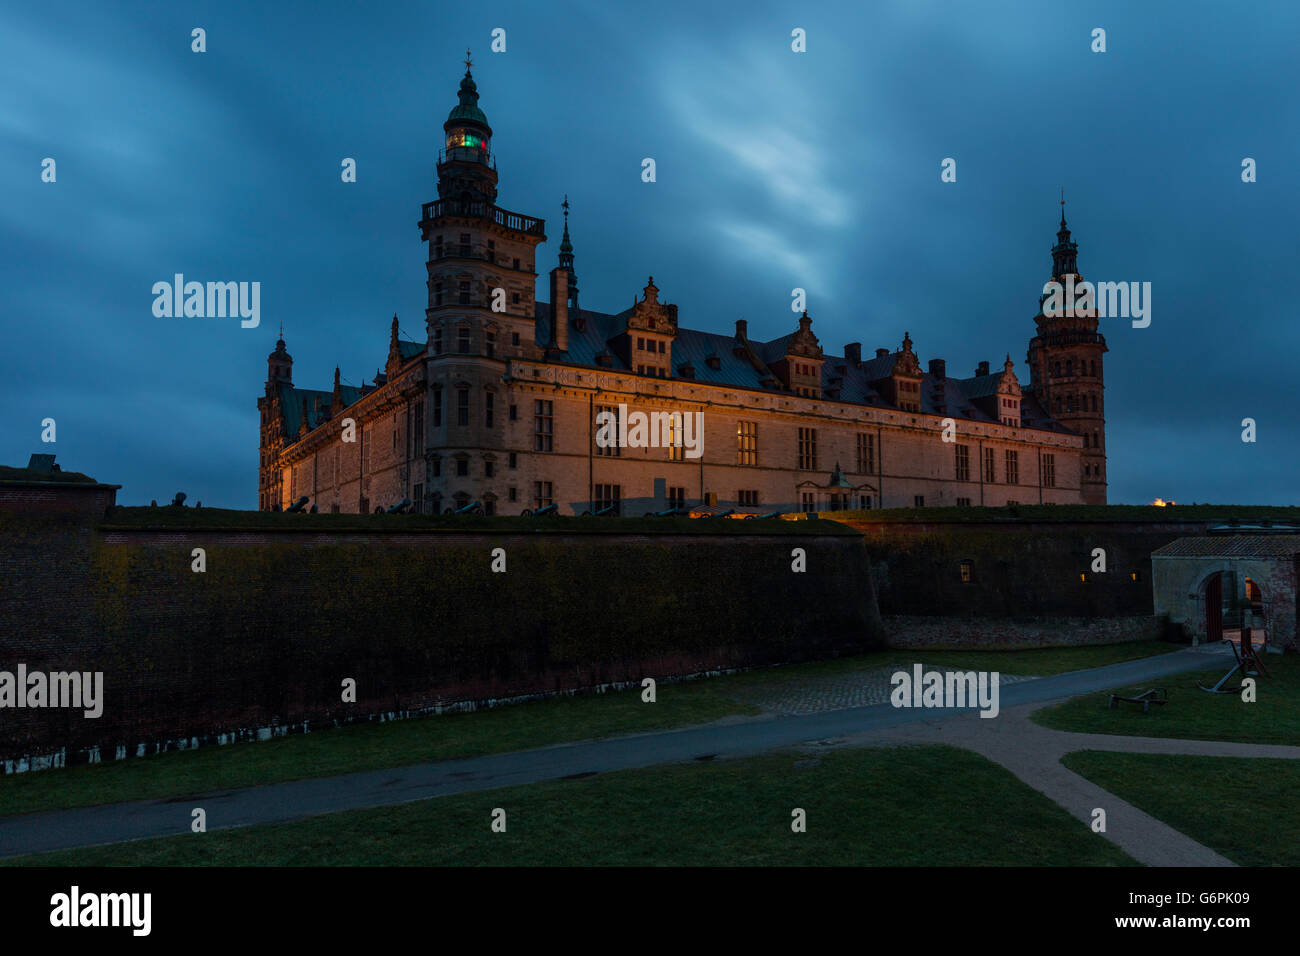 Kronborg Castle at night. Kronborg i located in Helsingor, Denmark - Stock Image